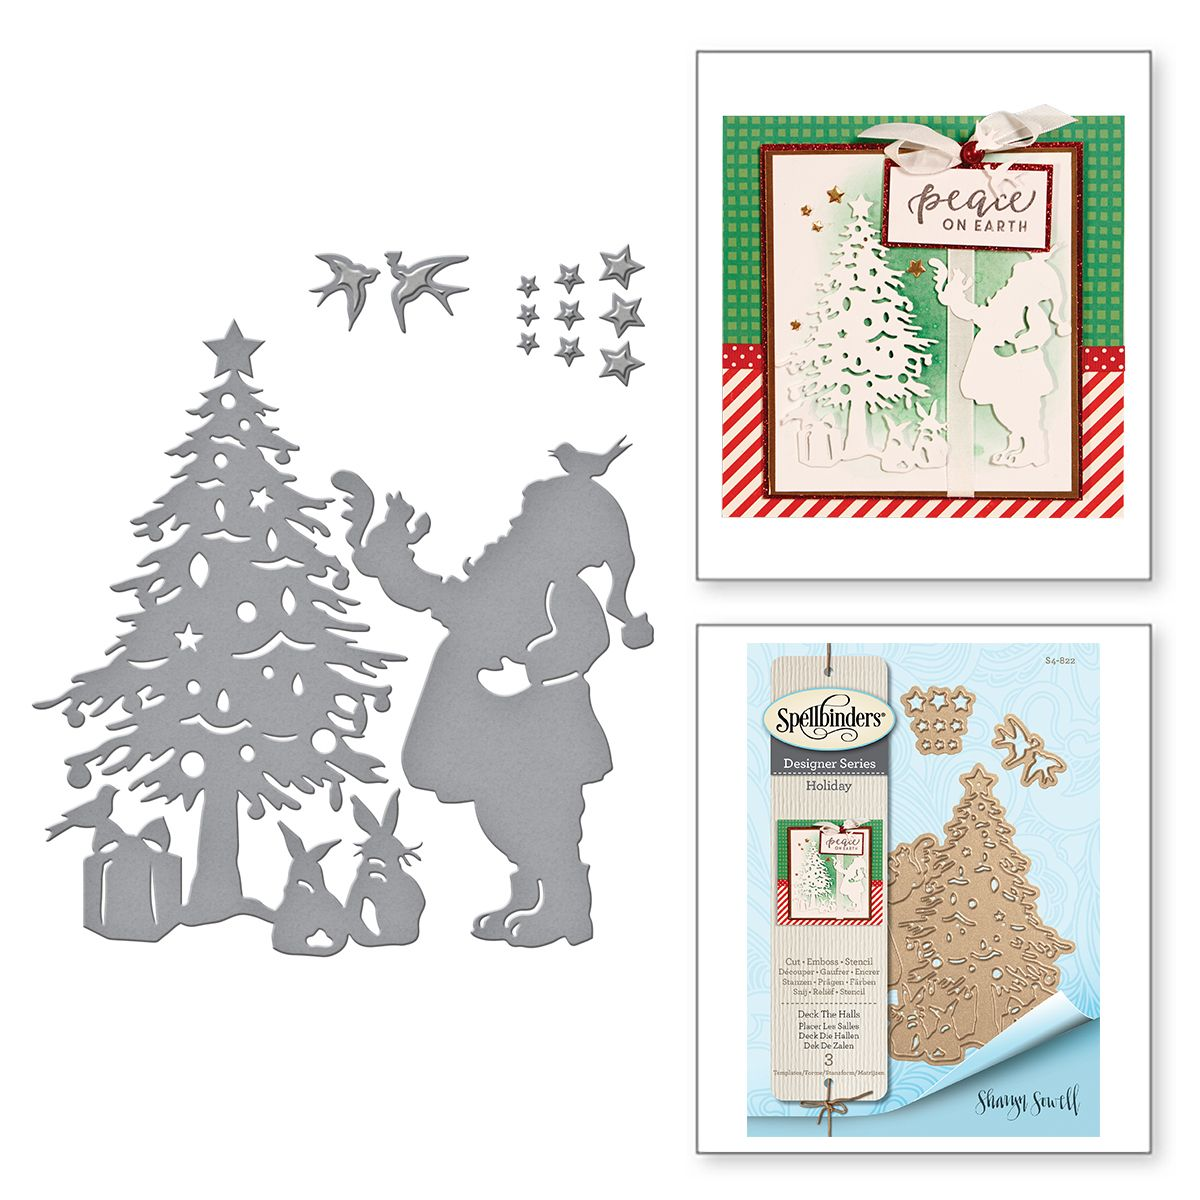 Spellbinders Shapeabilities Deck the Halls by Sharyn Sowell Etched//Wafer Thin